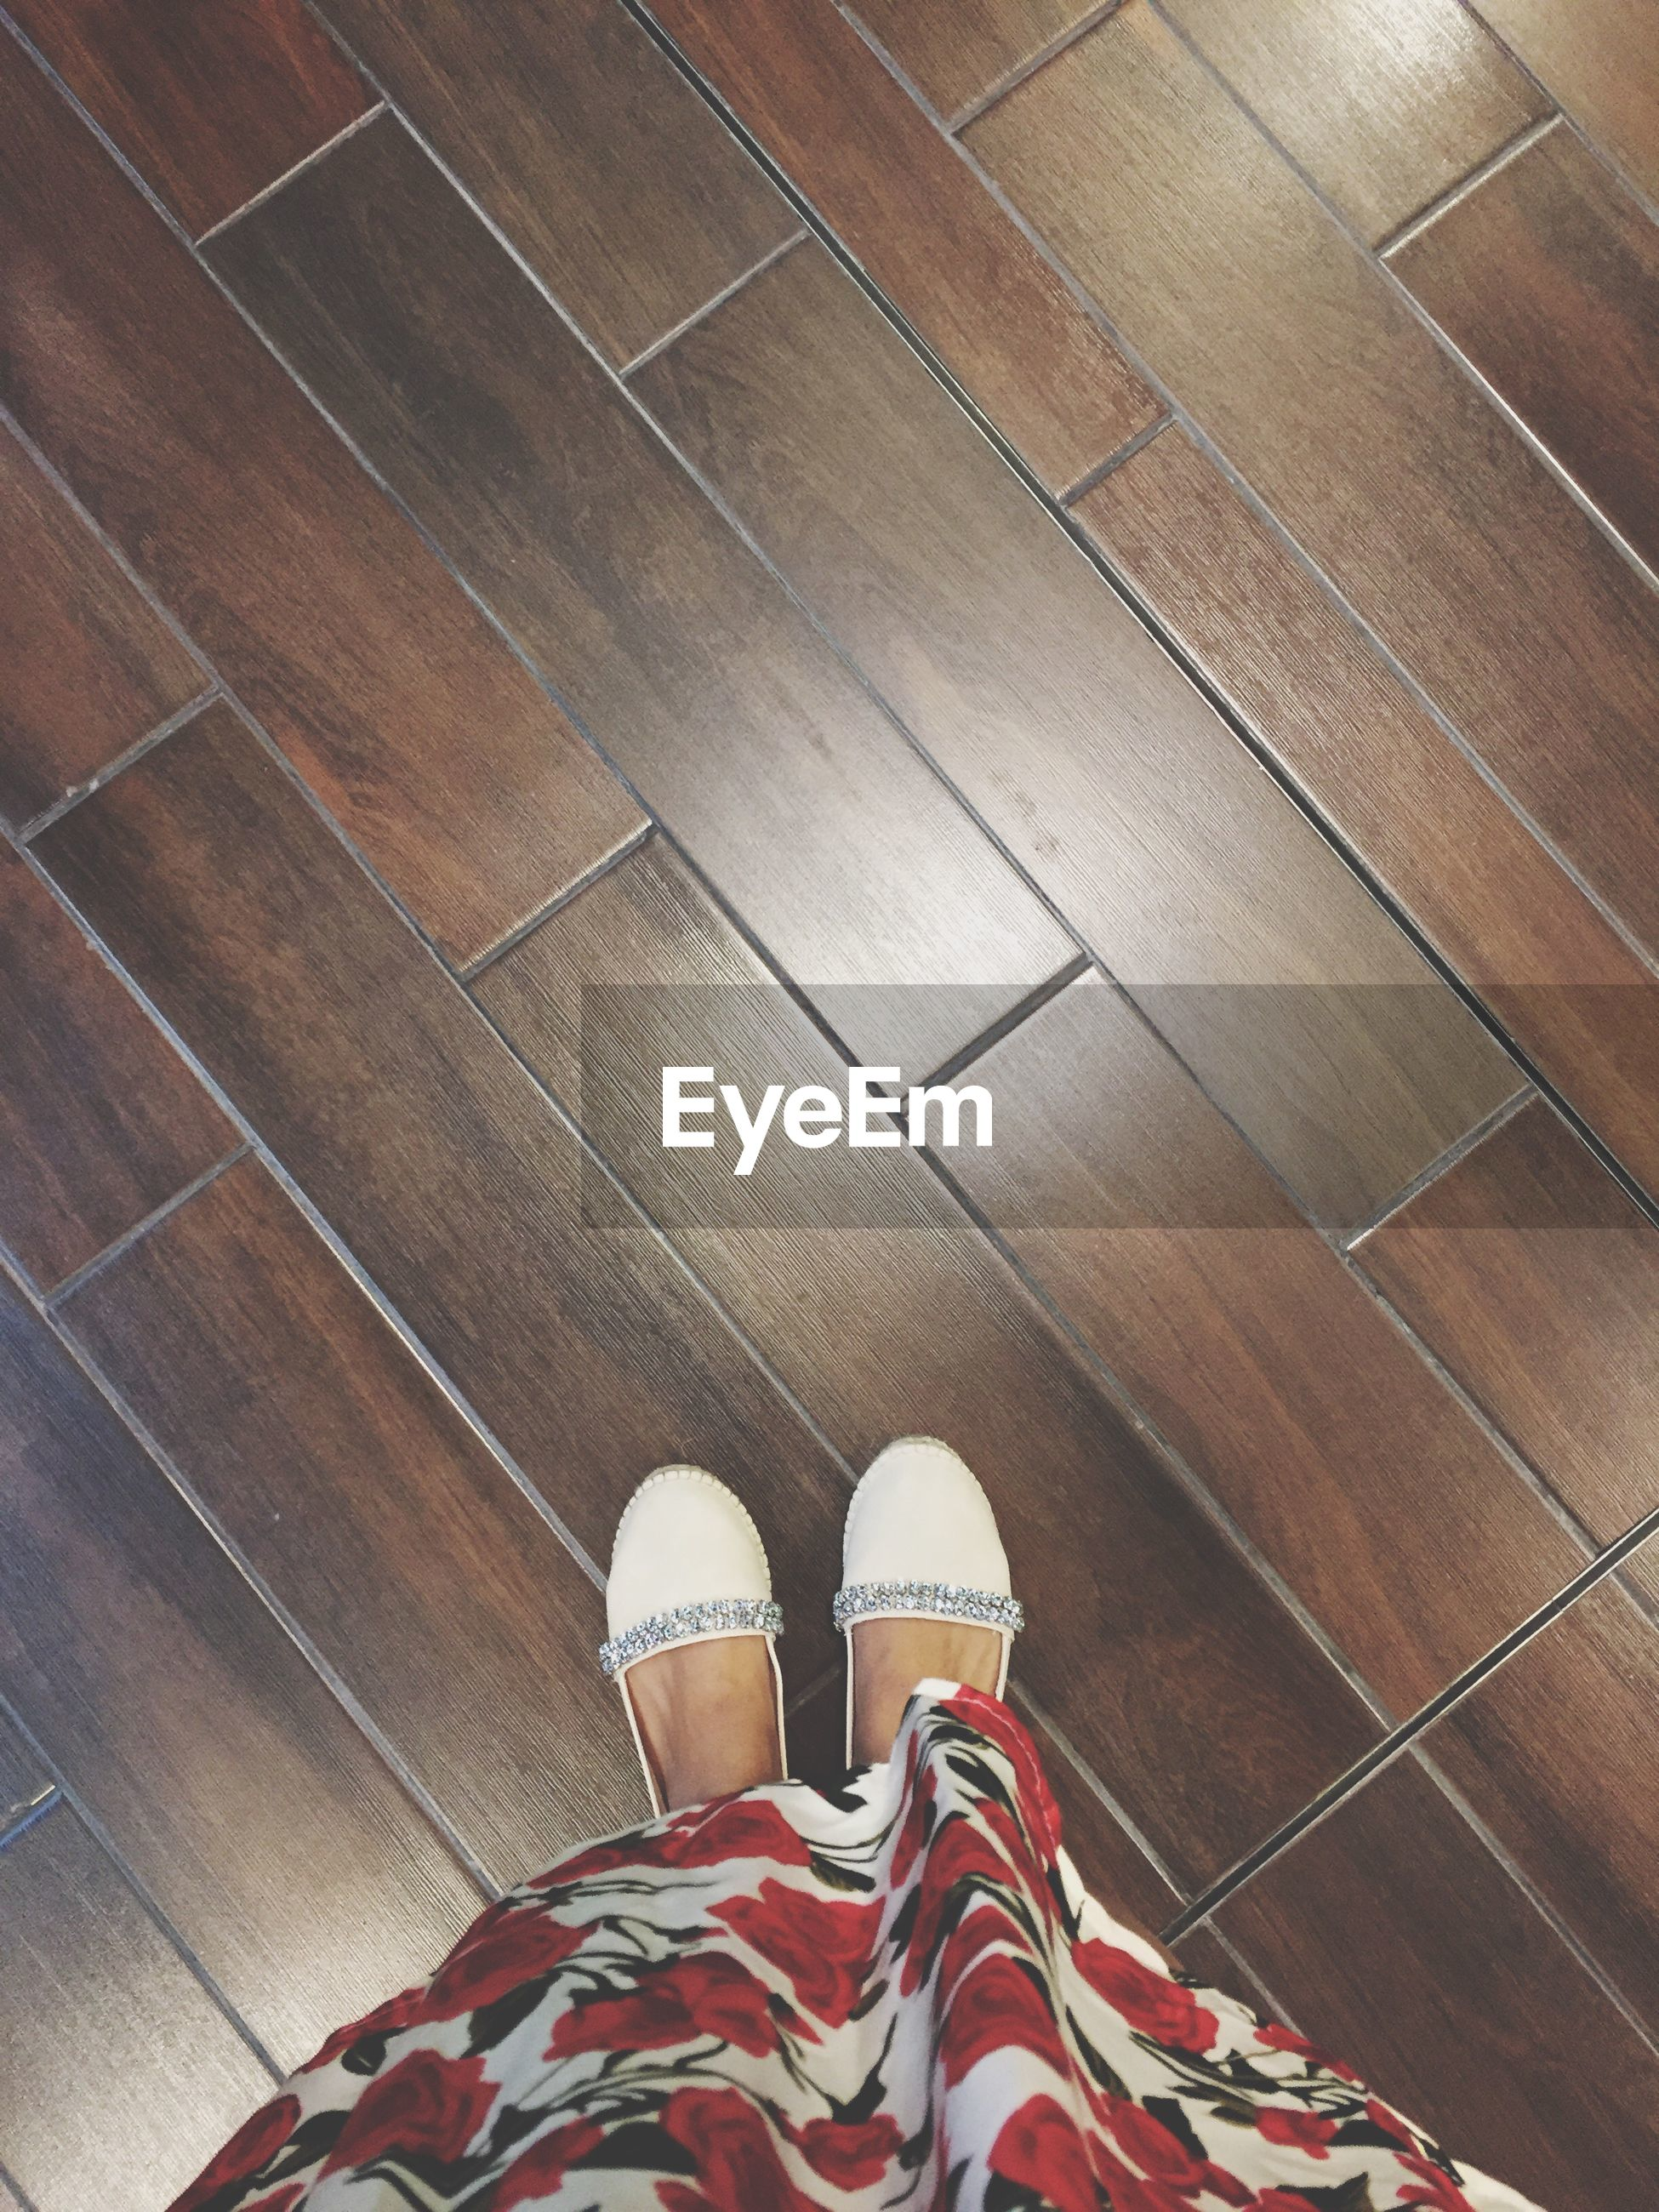 shoe, person, low section, personal perspective, standing, indoors, human foot, wood - material, lifestyles, brown, flooring, high angle view, footwear, wooden, hardwood floor, canvas shoe, sock, day, high section, shoes